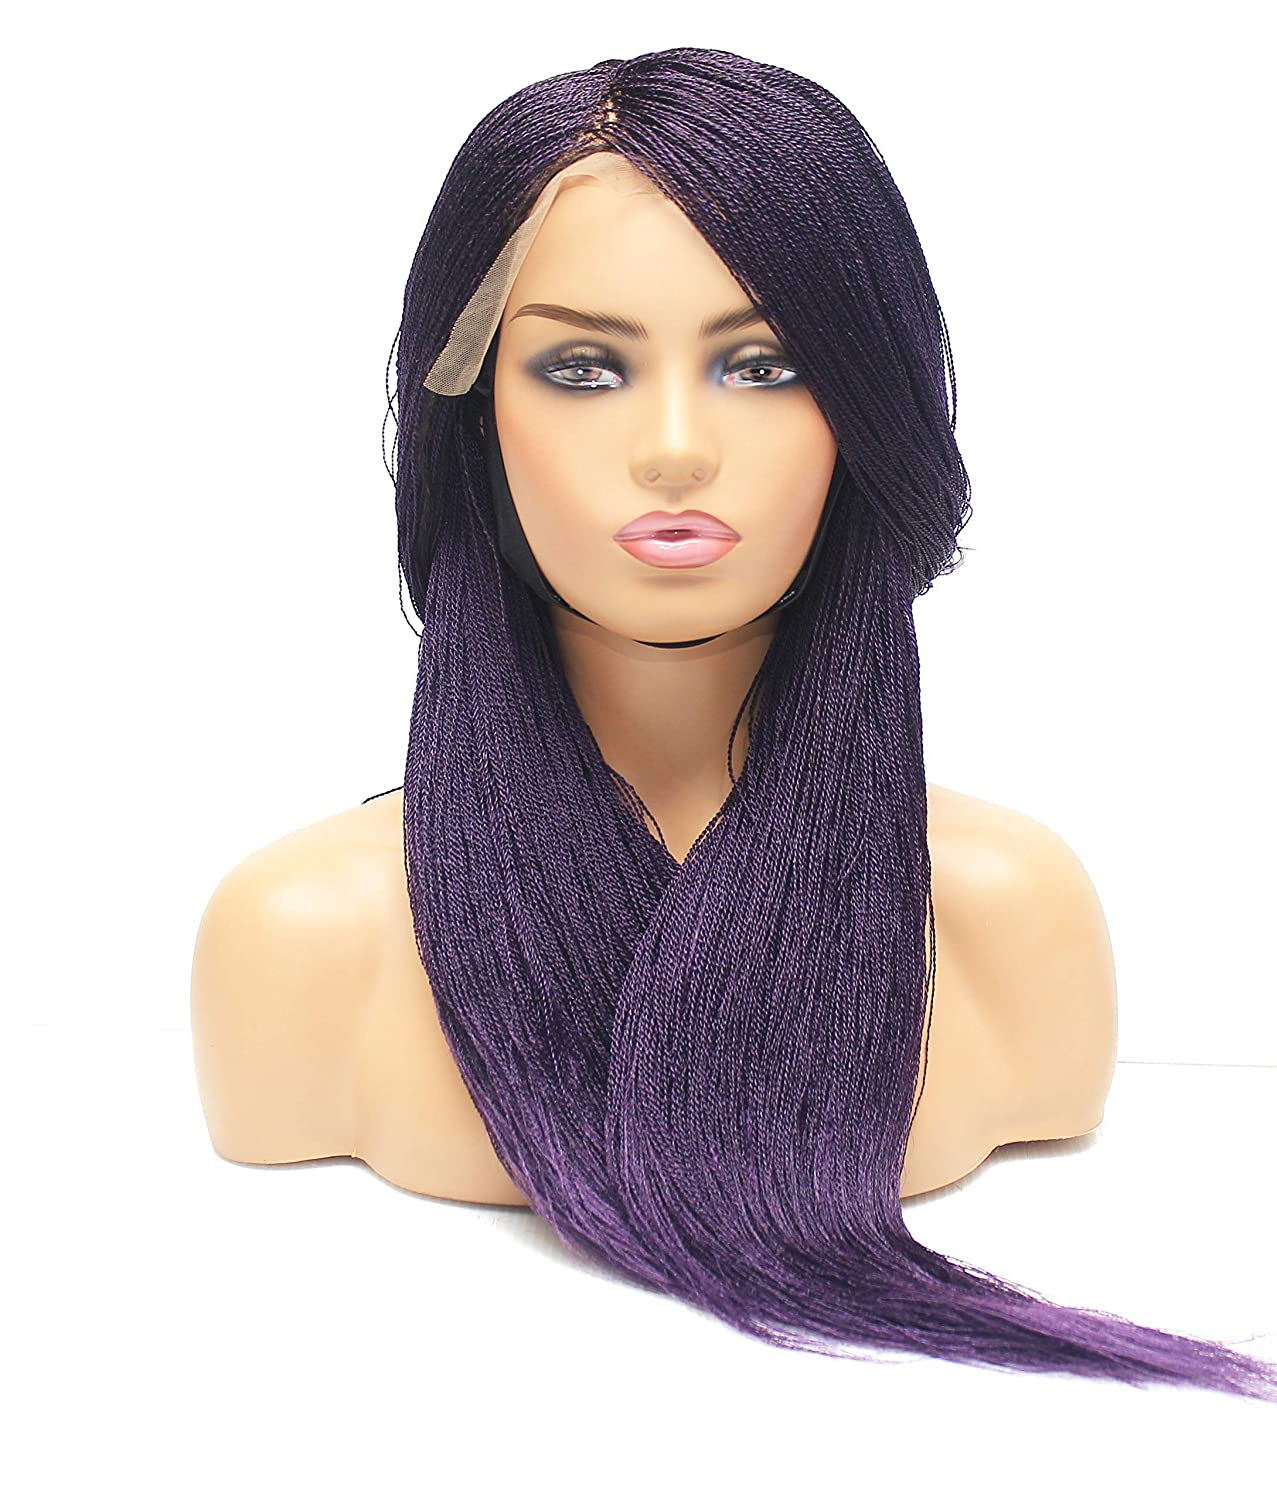 Micro braided wig- Braided wigs for Sacramento Mall women- gift black frontal wi lace